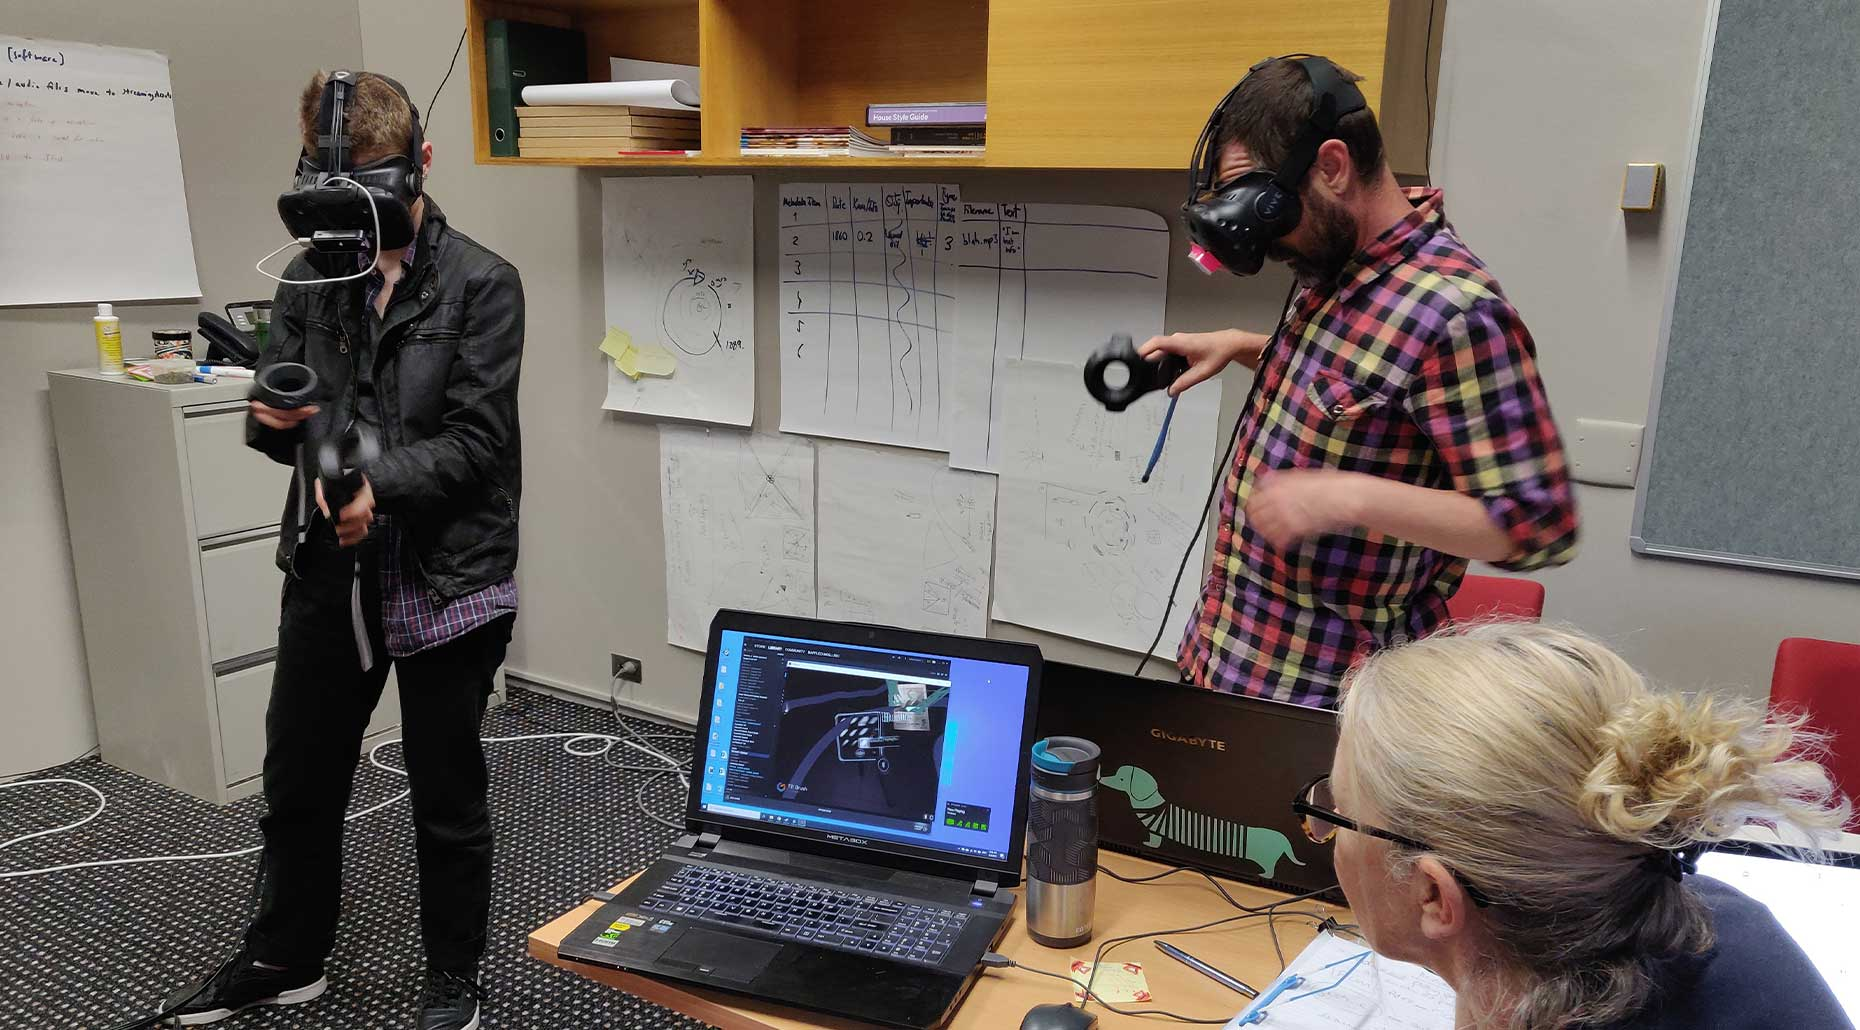 Research project prototype testing at MAAS, 2019, Dr Andrew Burrell, Dr Rachel Hendry and Kate Richards. Image courtesy of the research fellows.